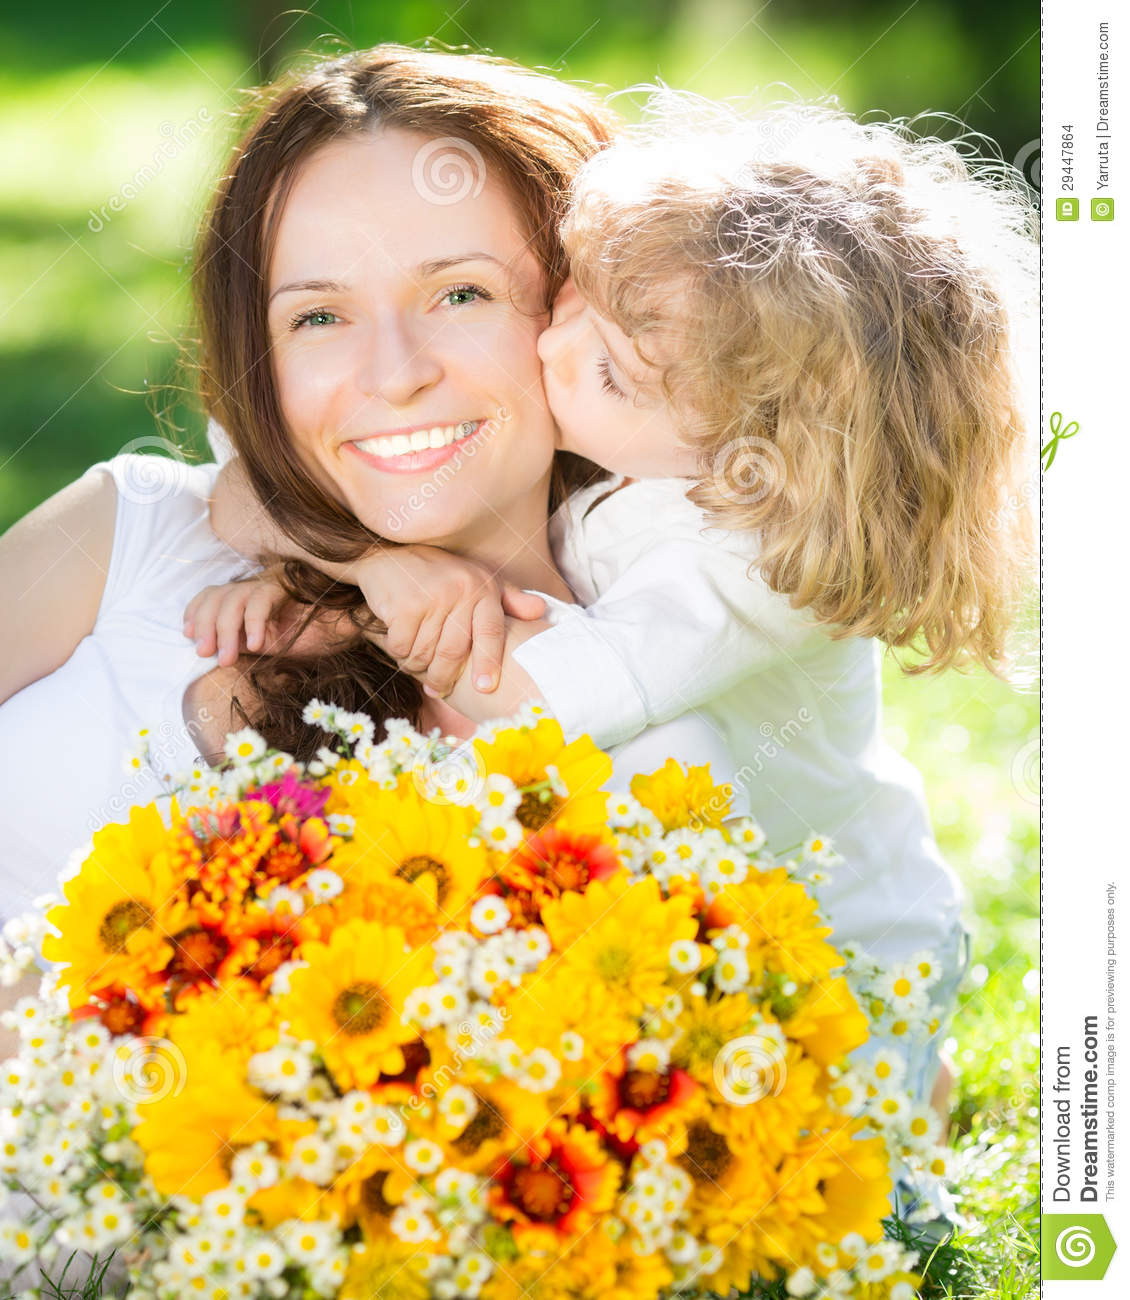 enfant et femme avec le bouquet des fleurs photo stock image du herbe nature 29447864. Black Bedroom Furniture Sets. Home Design Ideas